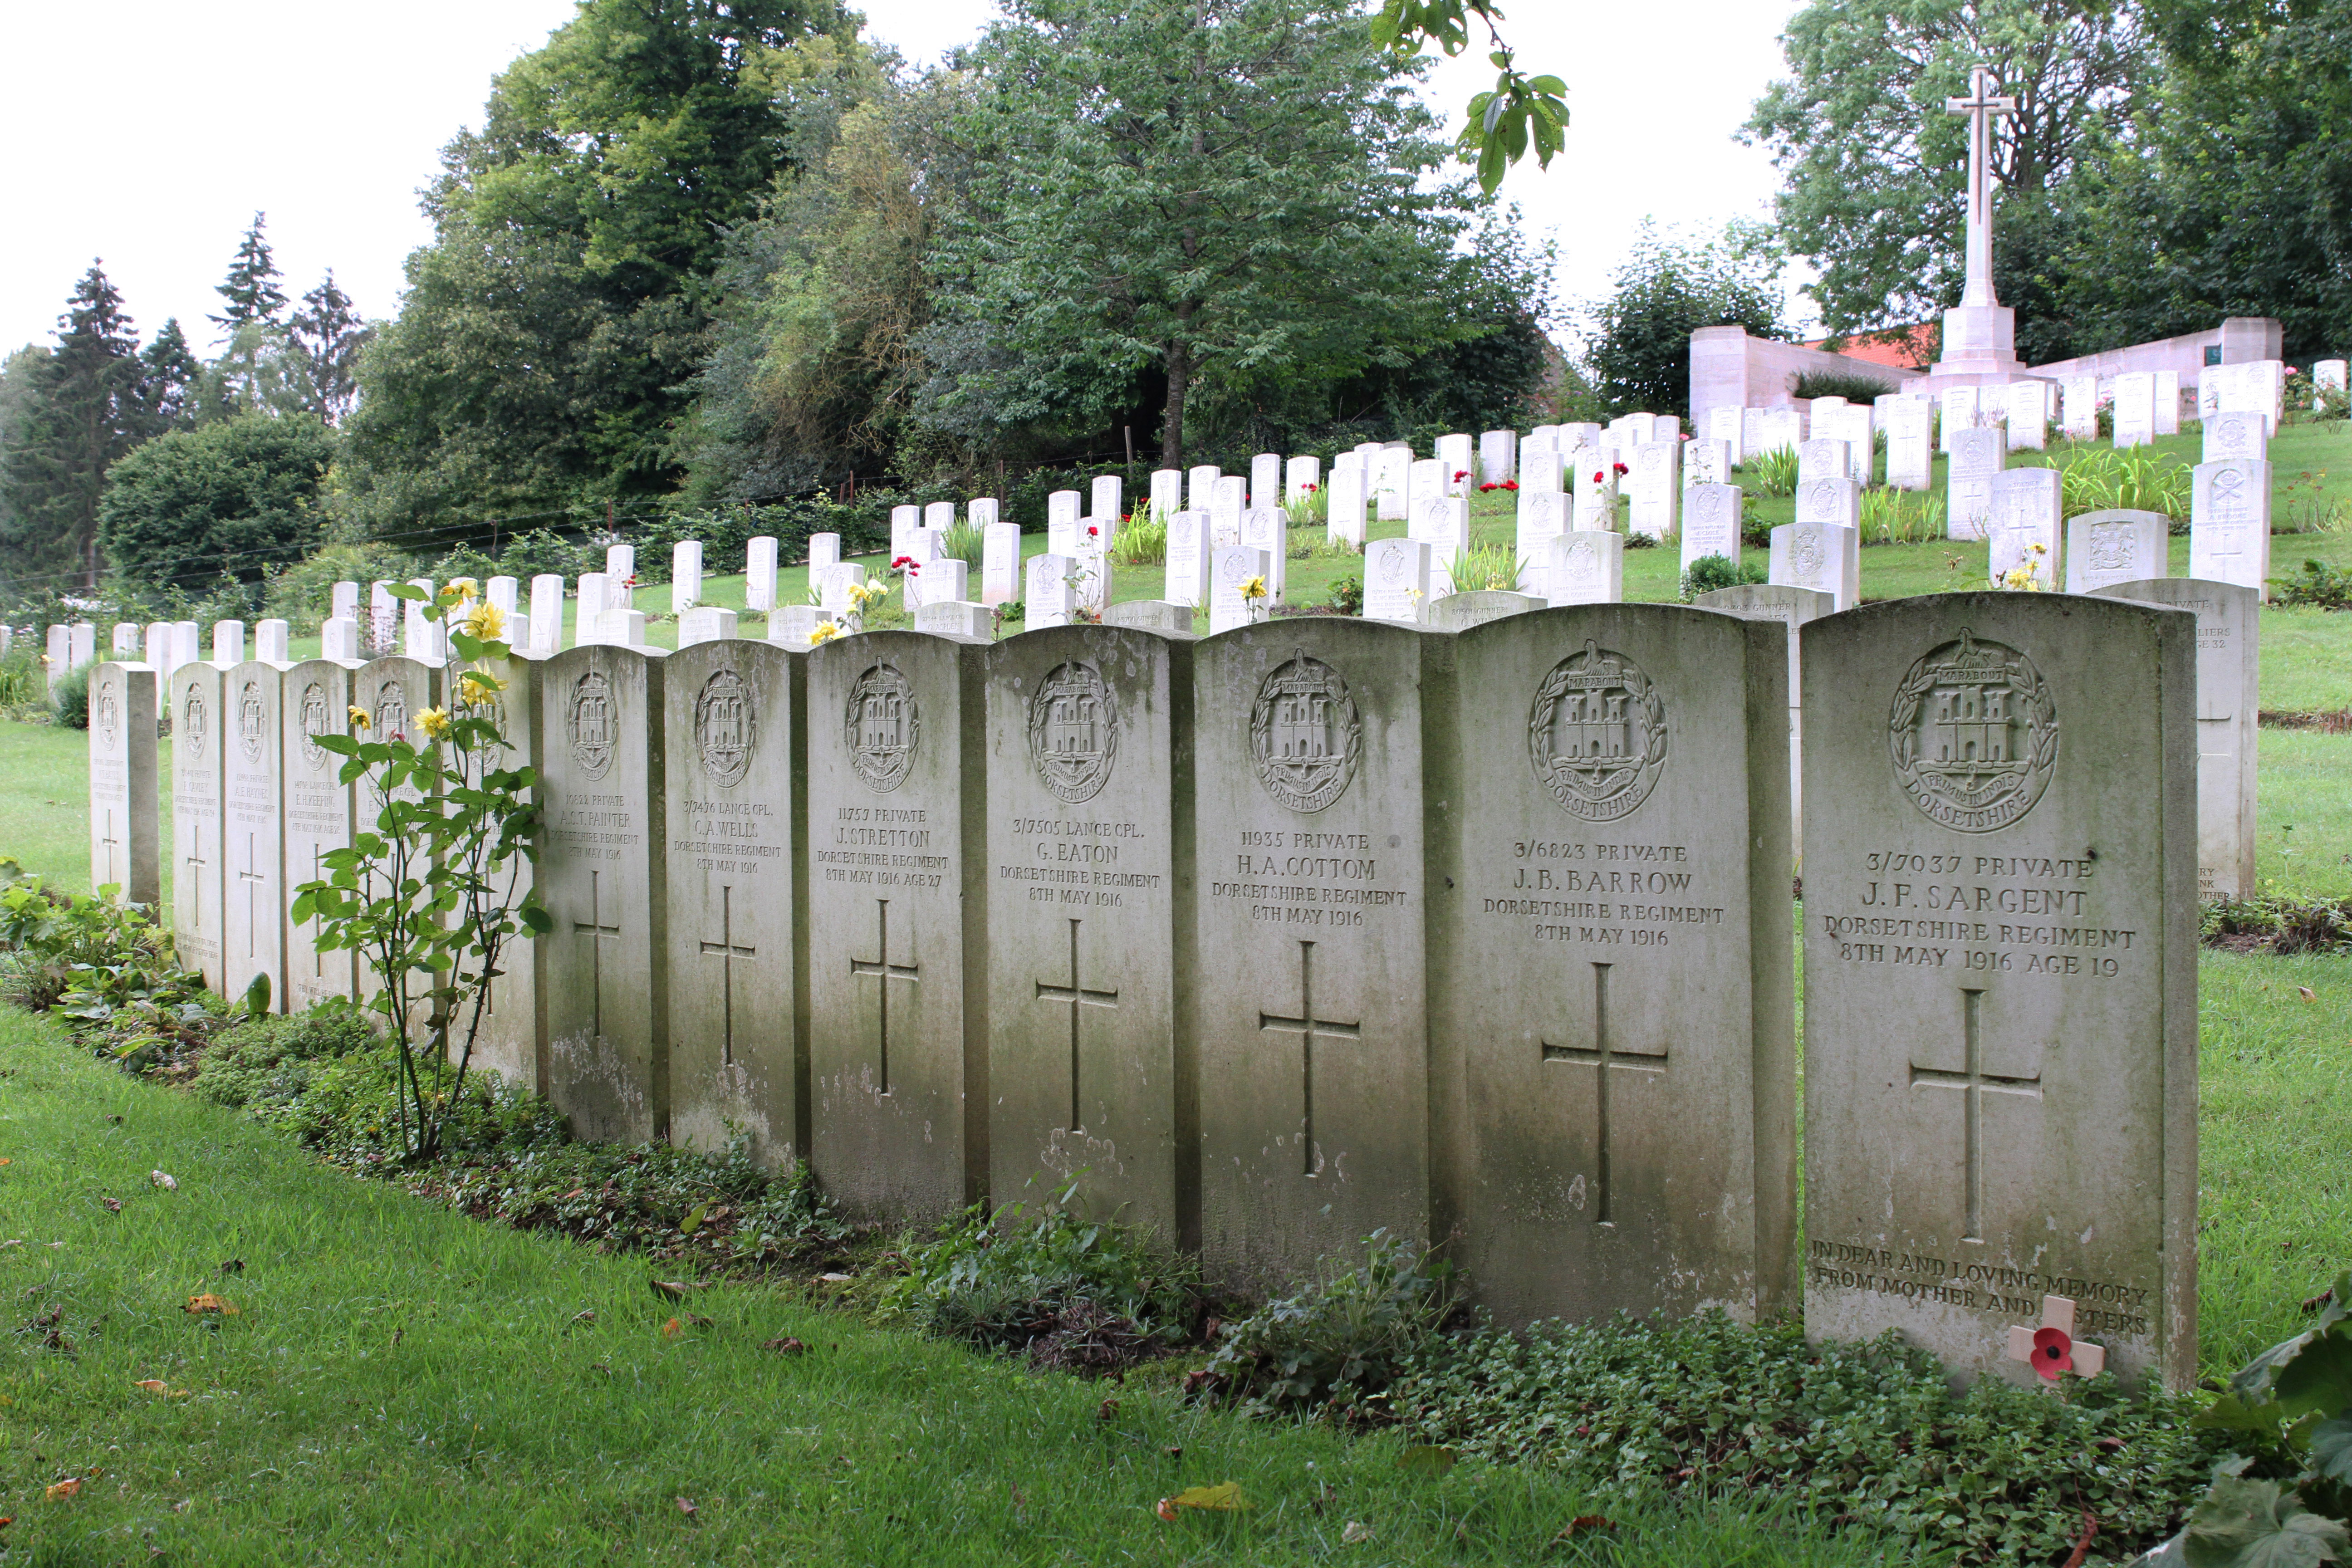 Thirteen soldiers from the Dorsetshires killed in action